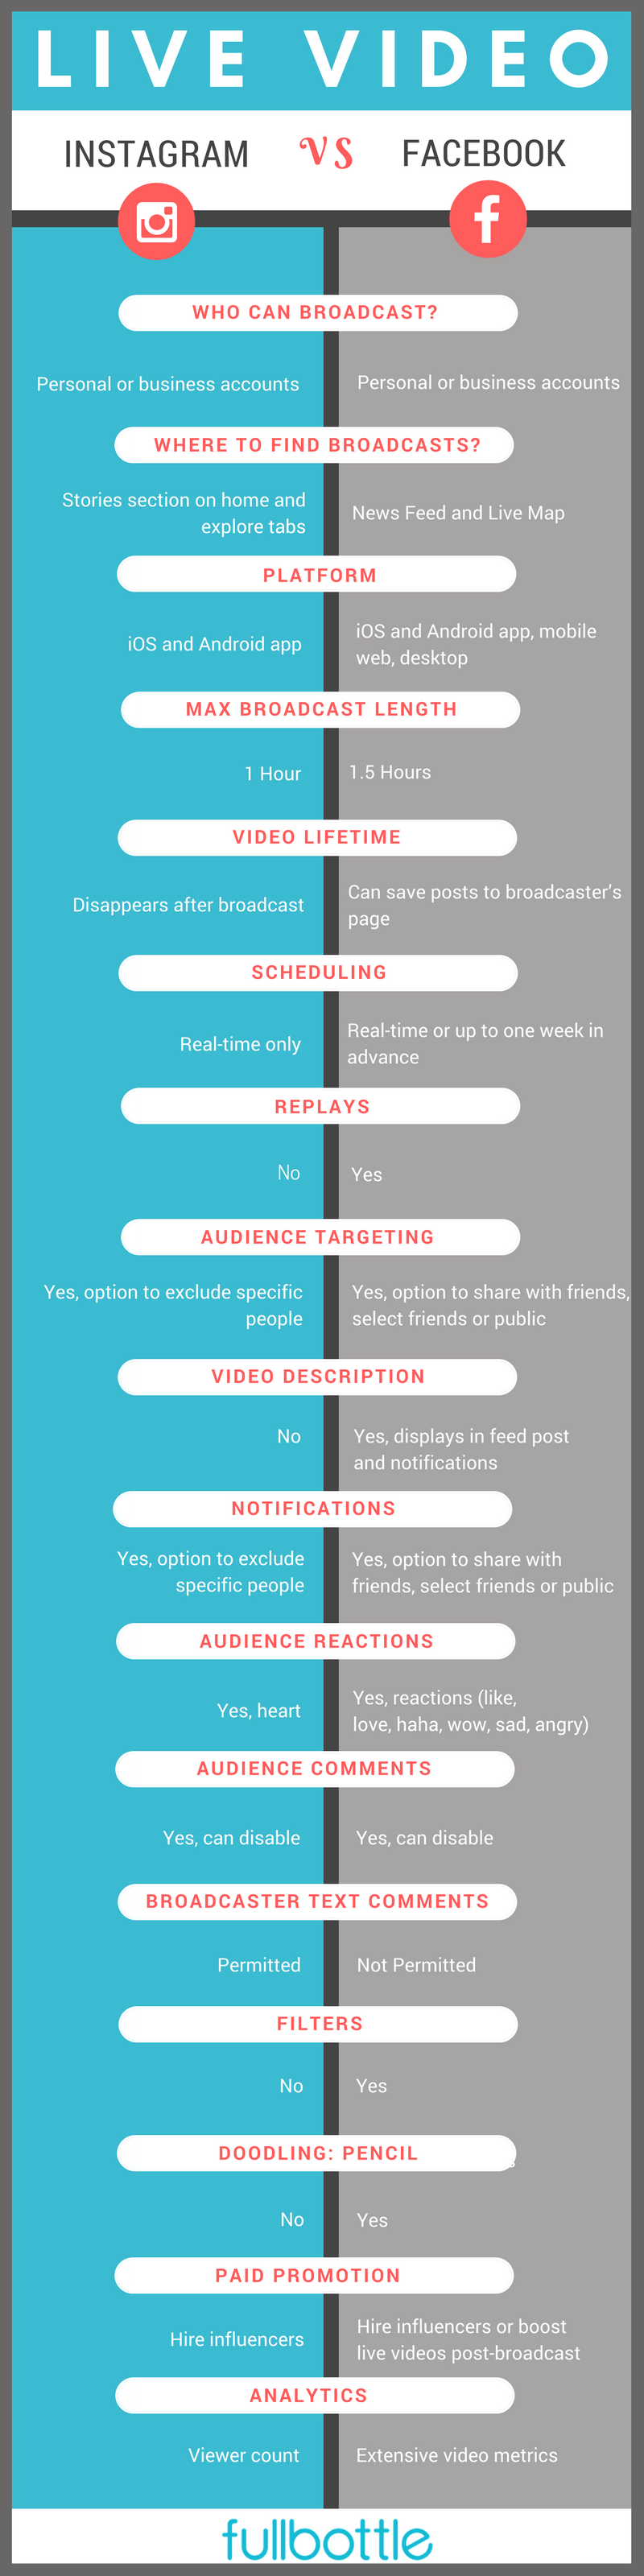 Comparison Of Facebook Live And Instagram Live Video